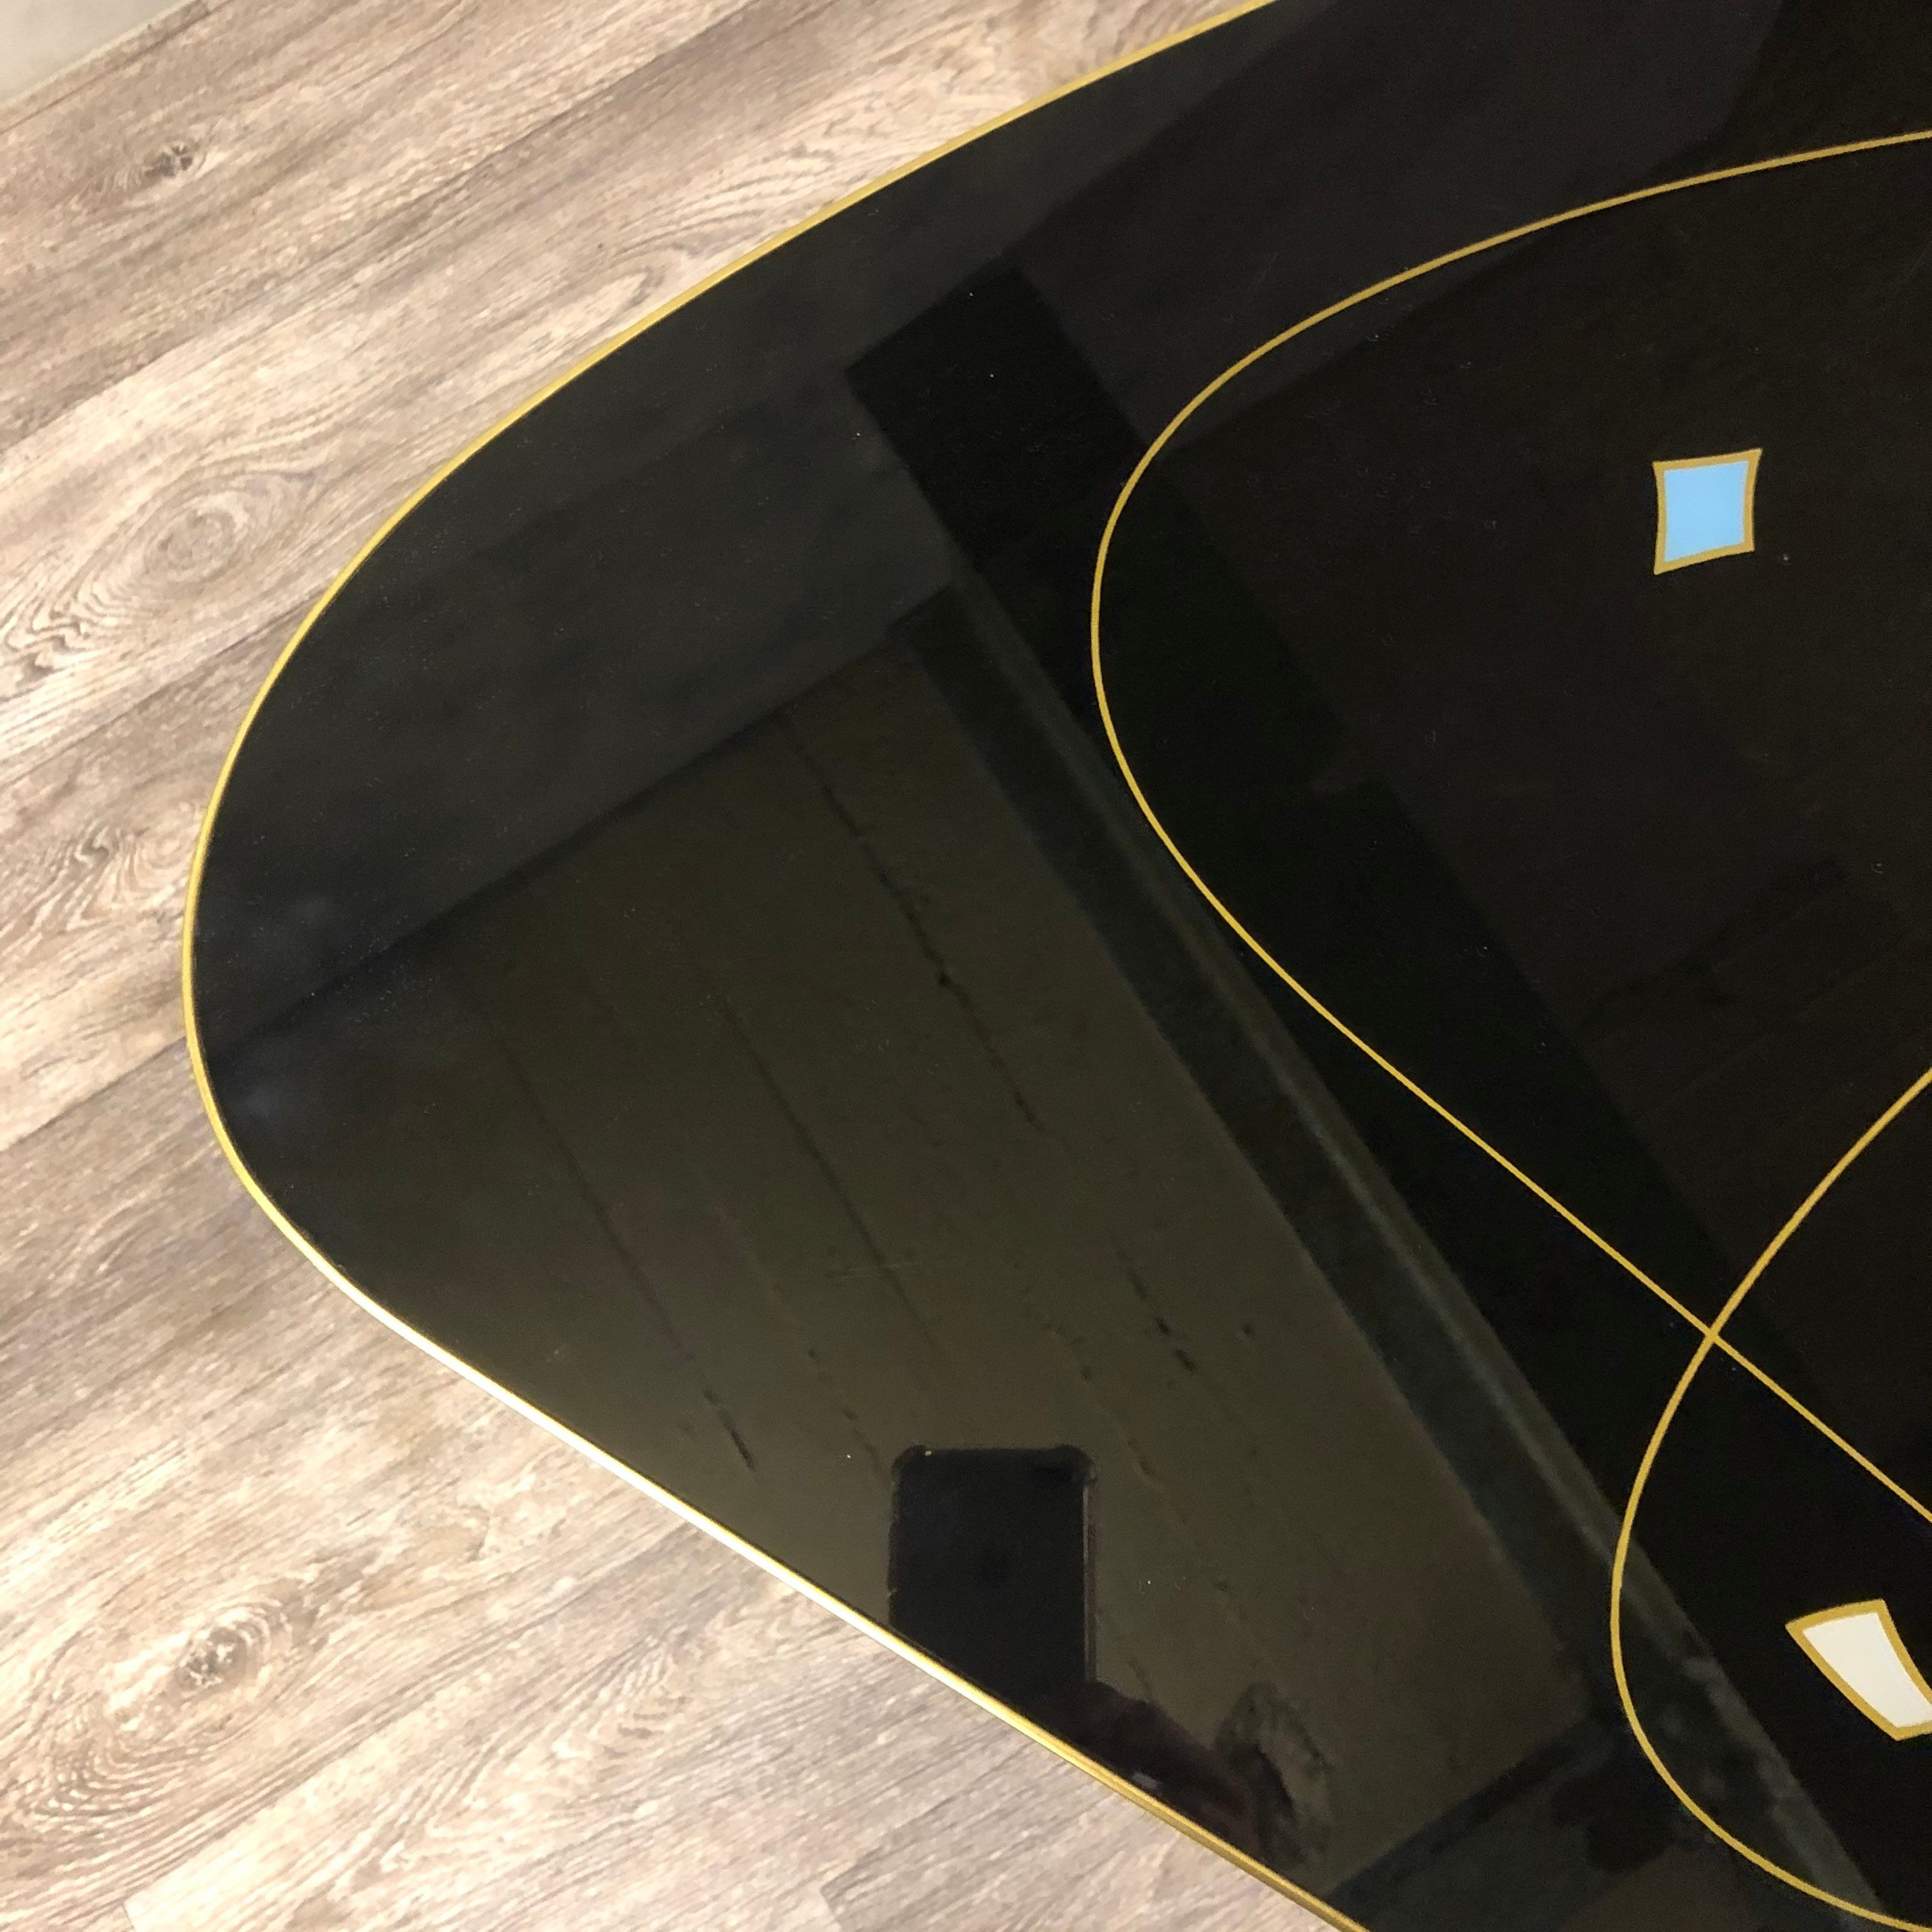 Rare and exquisite midcentury glass topped coffee table